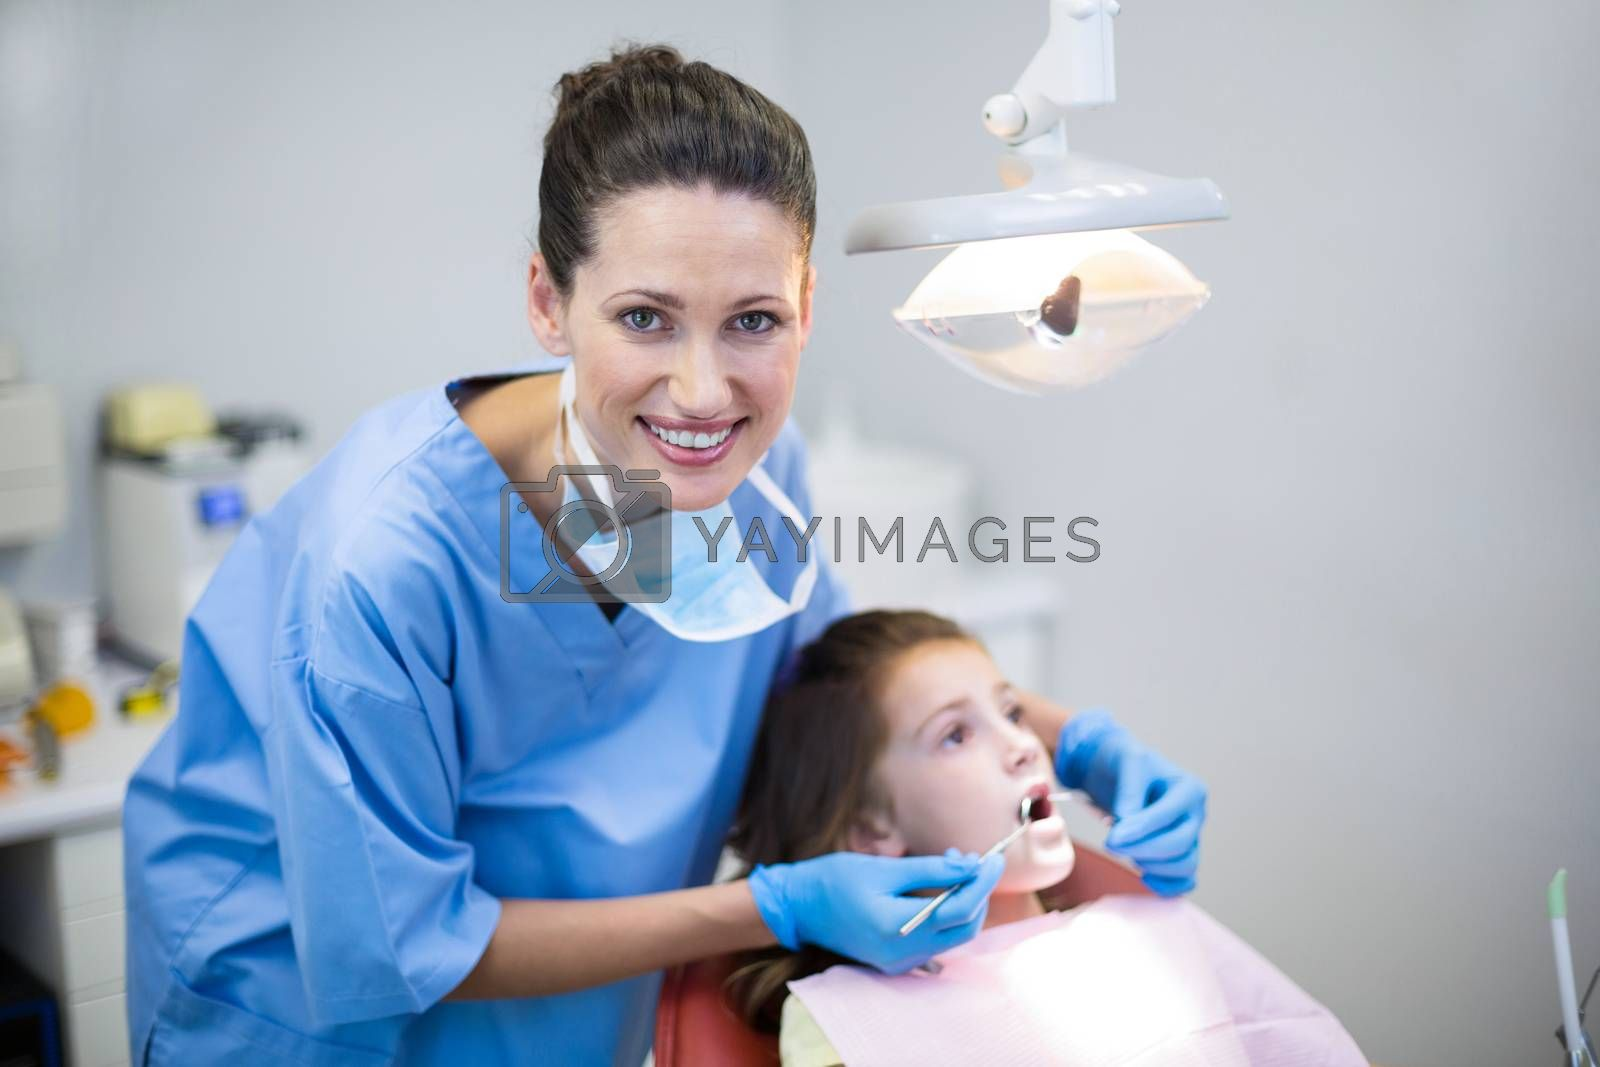 Portrait of dentist examining a young patient with tools in dental clinic